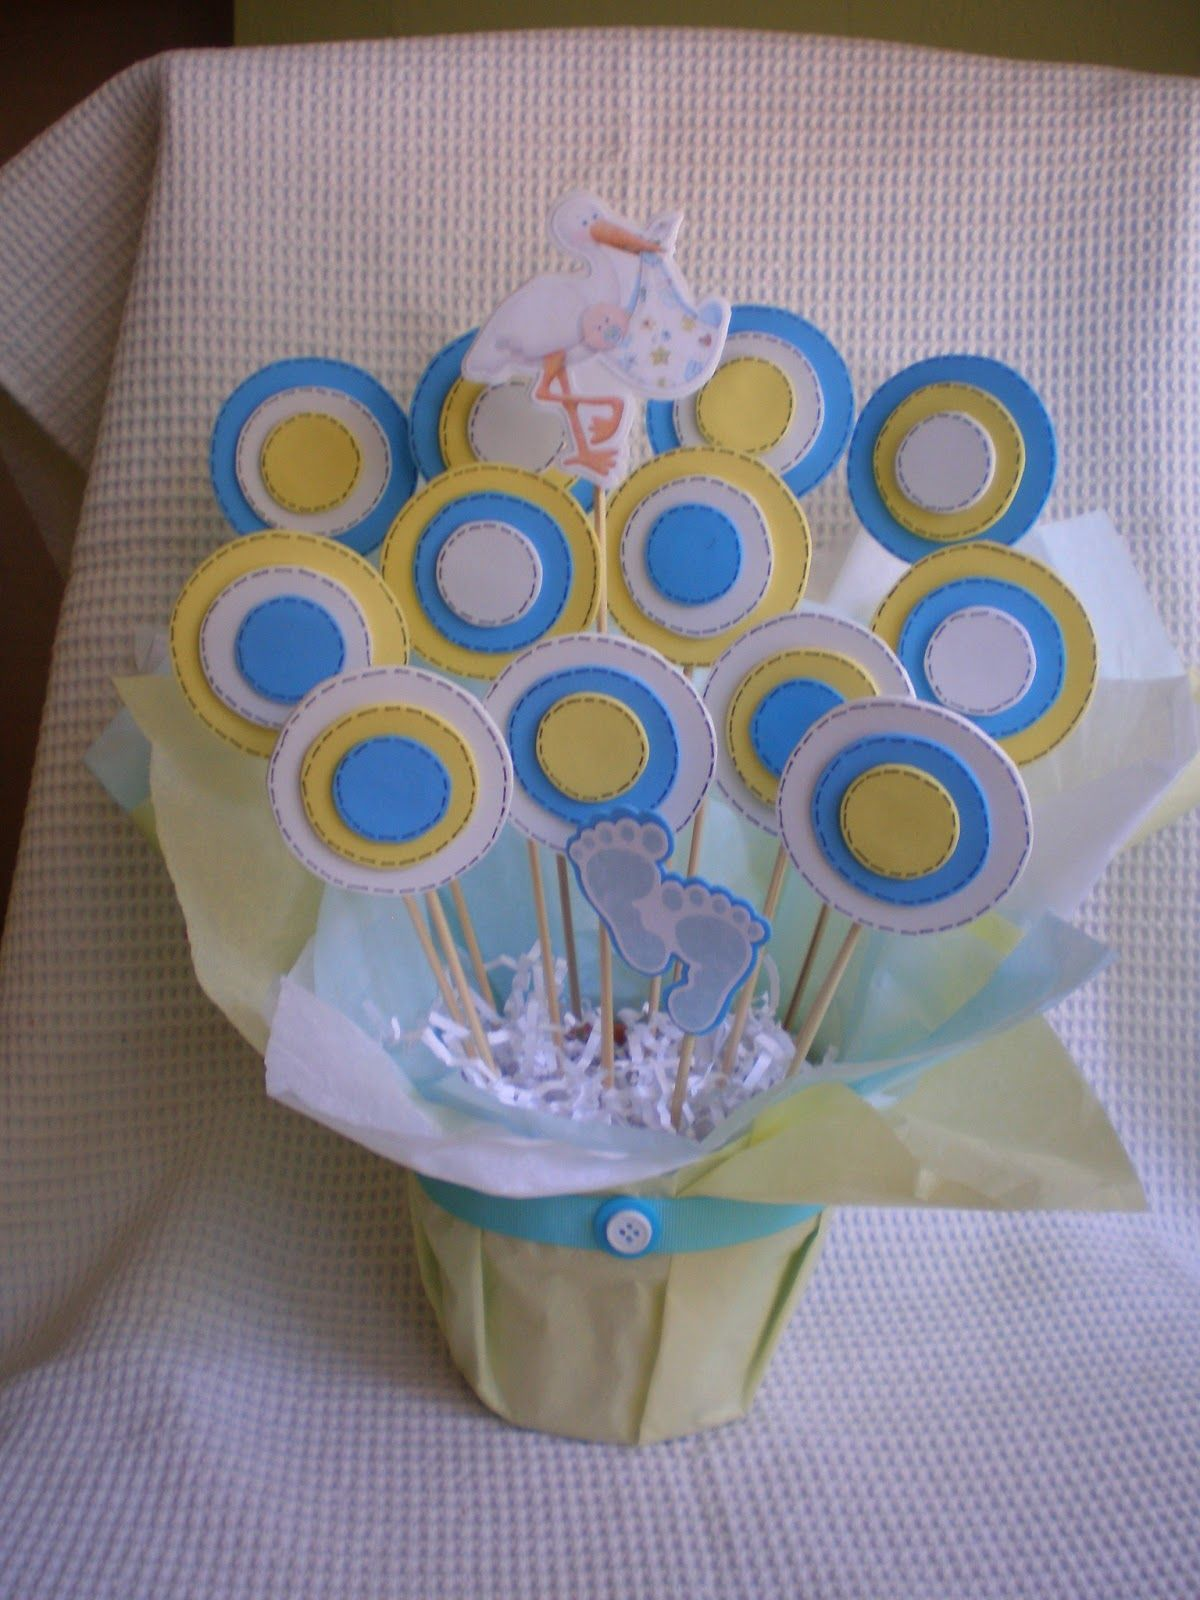 Digigirl paper crafts baby shower centerpieces for a boy cocos